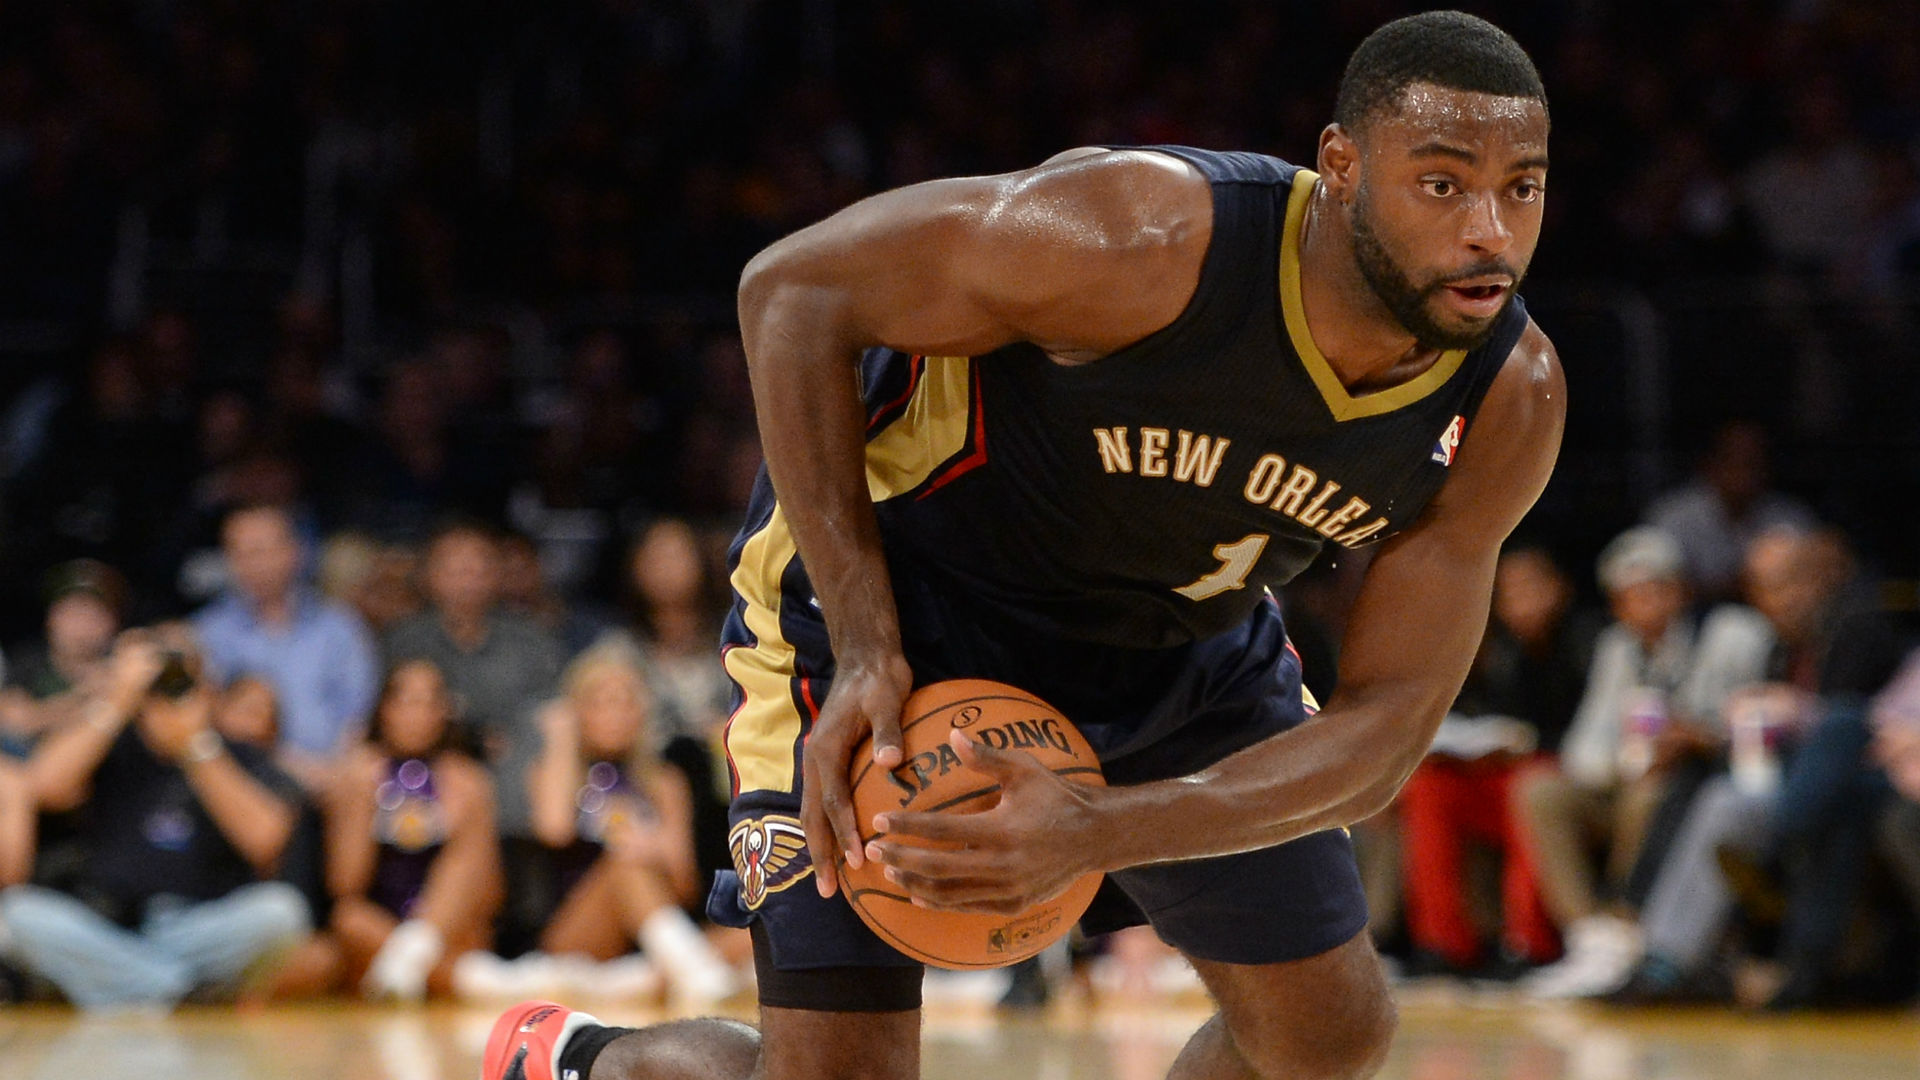 NBA betting lines and picks – Injuries loom large for Pelicans, Mavericks